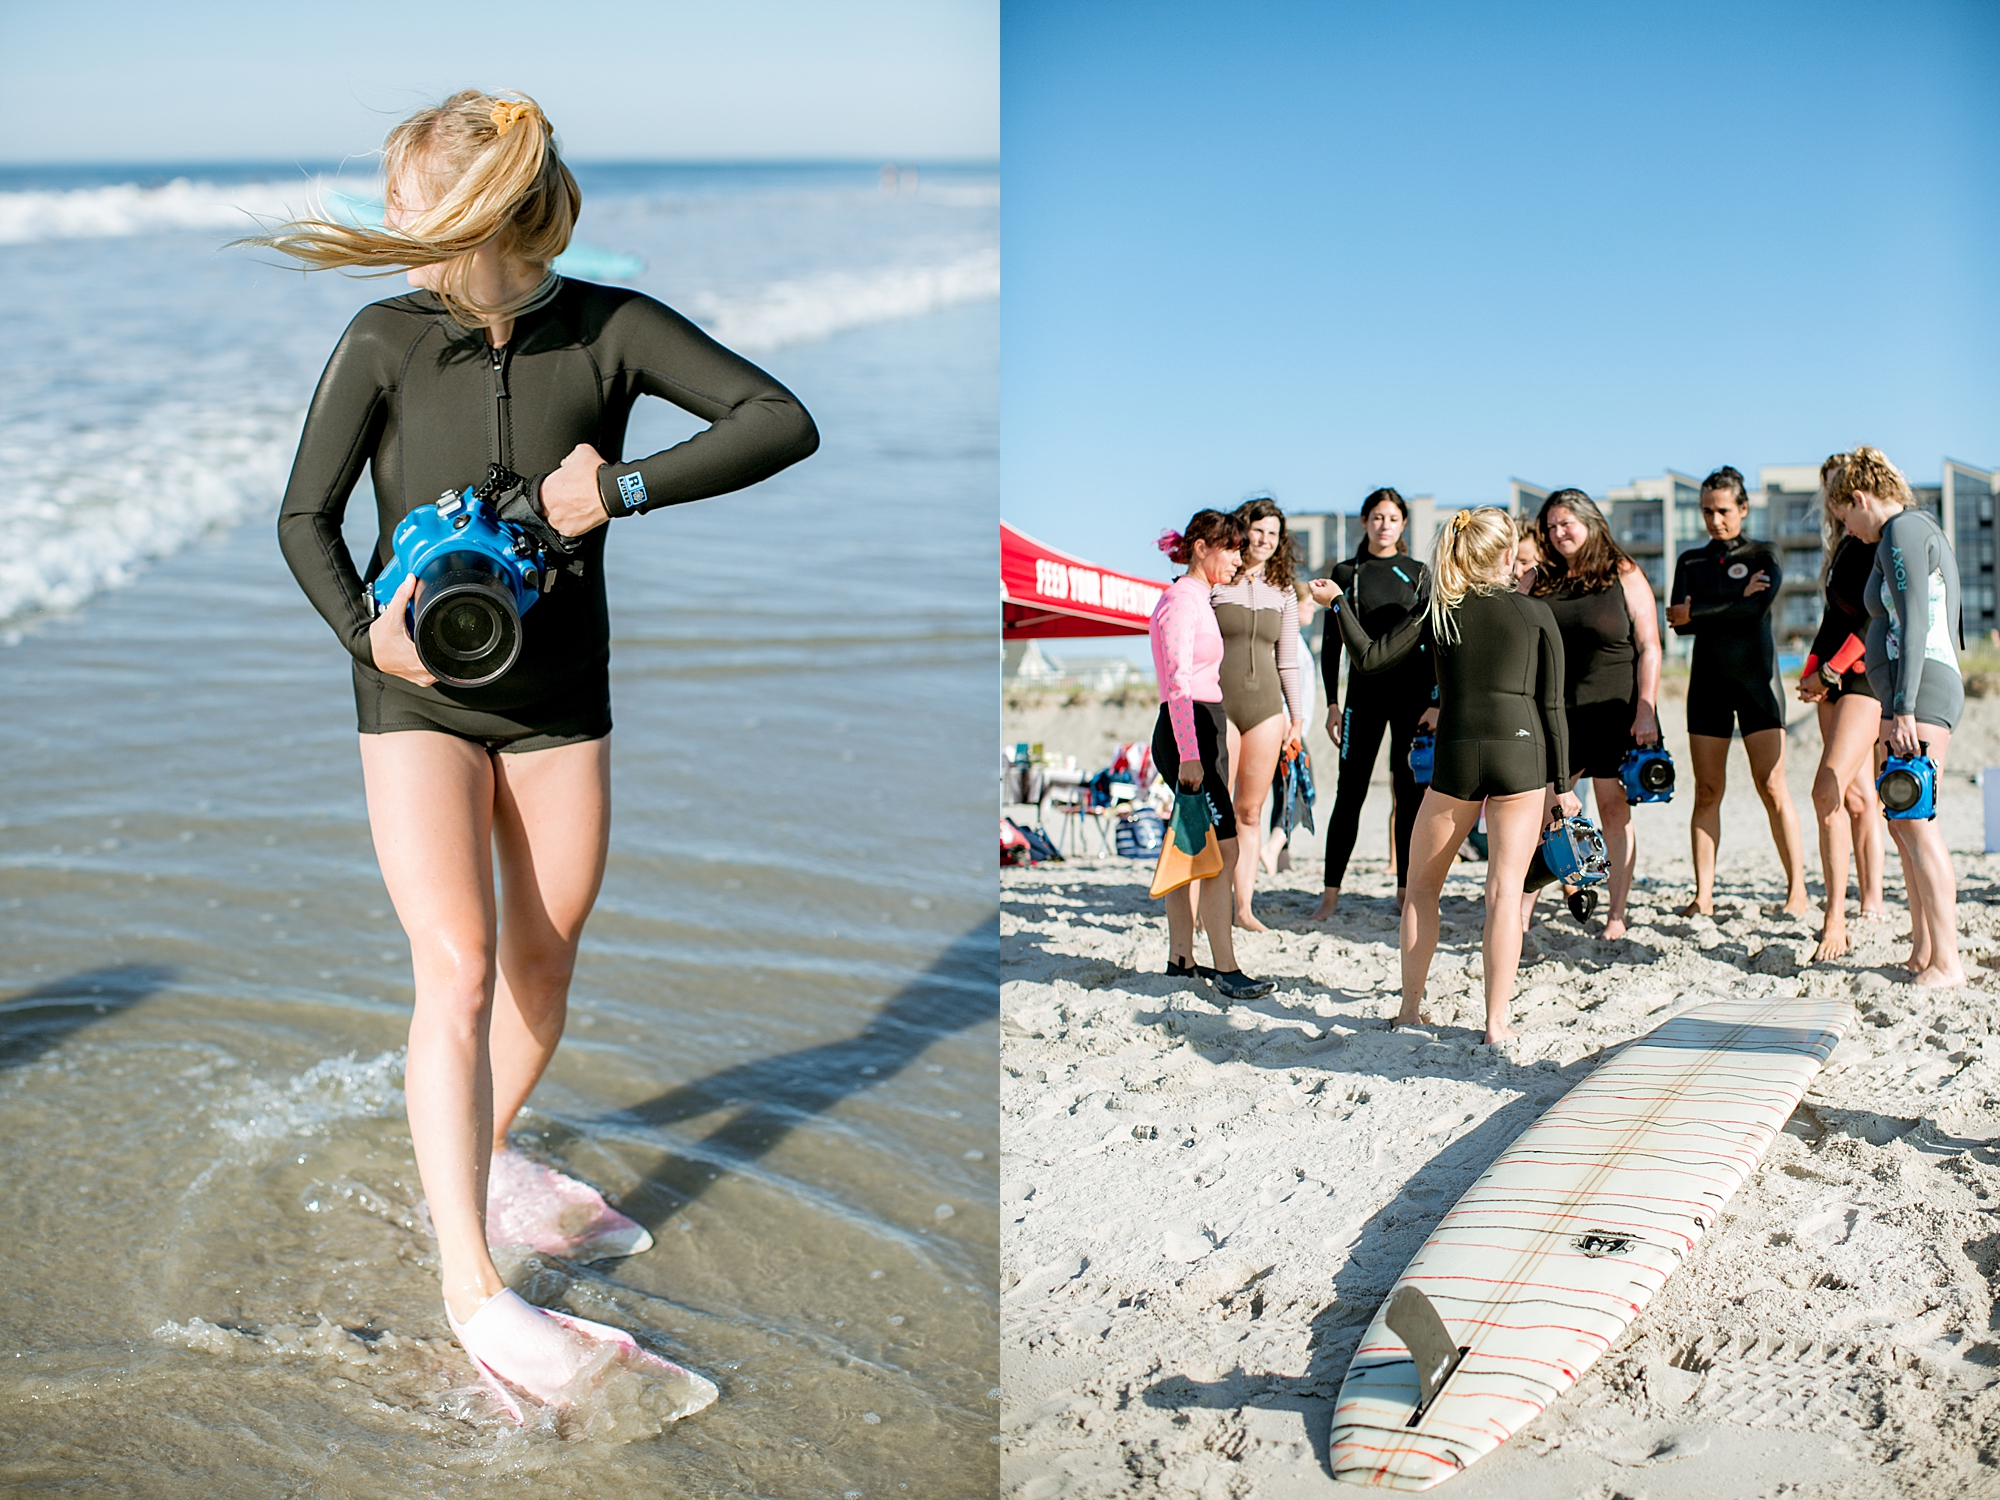 Women's Surf Film Festival - Women's Surf Photography Workshop by Bryanna Bradley - Photographer Kelee Bovelle @keleeb_0020.jpg